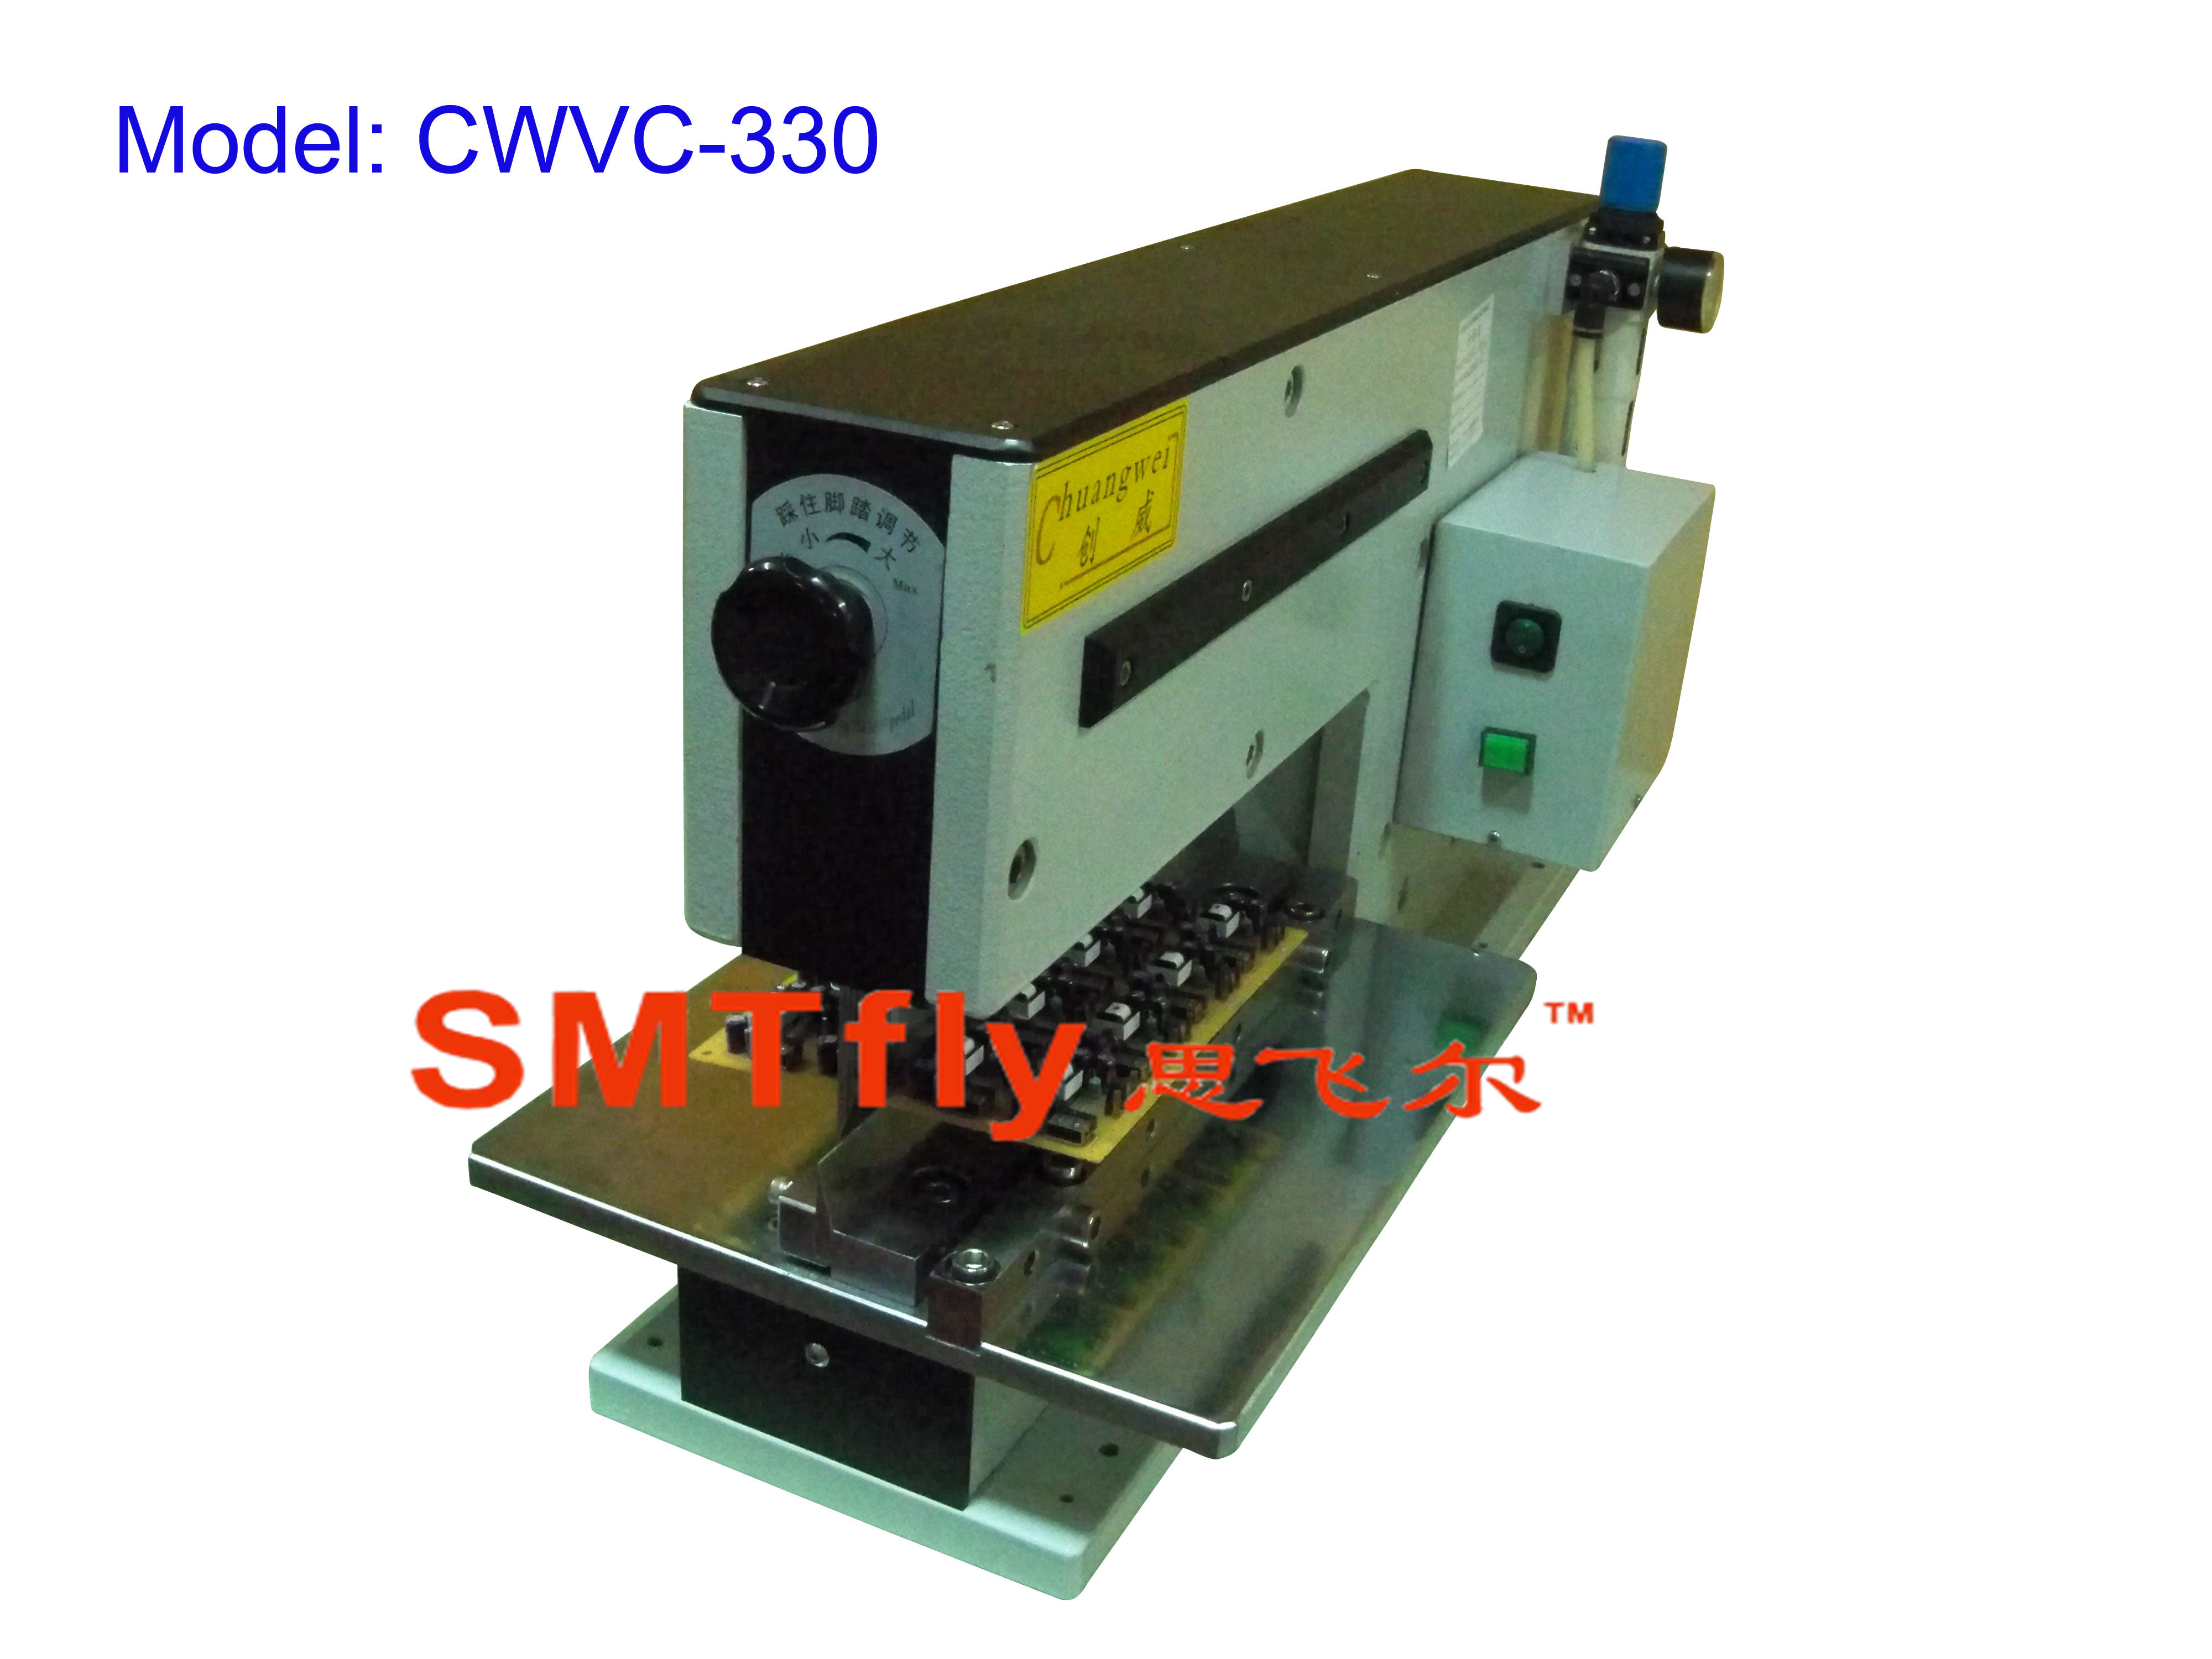 Rigid PCB Depanelizer,SMTfly-330J